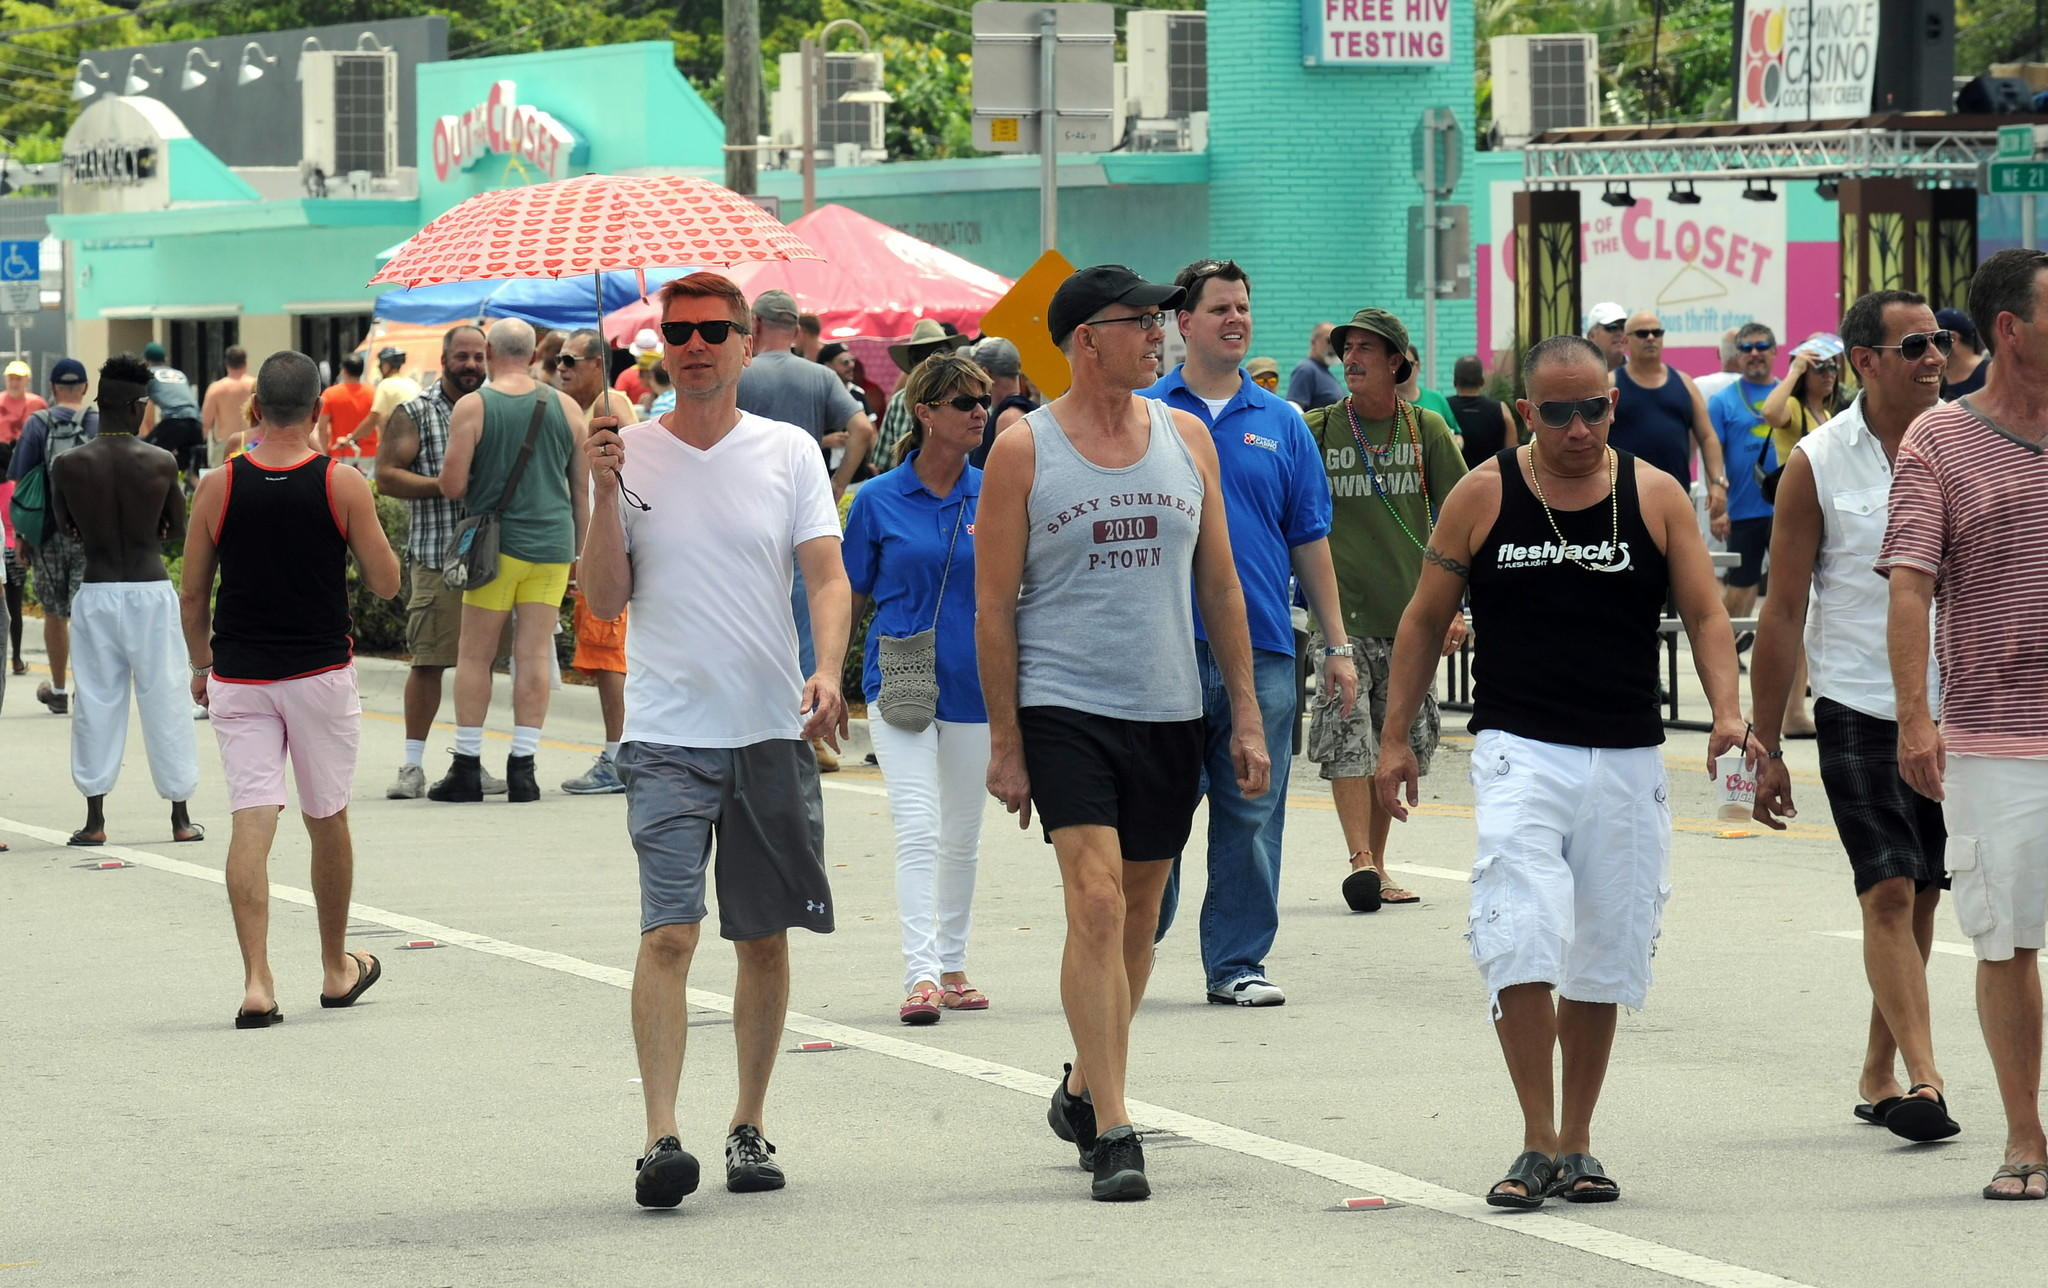 Mark Hagen catches a little shade from his umbrella while enjoying the Stonewall Festival in downtown Wilton Manors in June 2013. Jim Rassol, Sun Sentinel